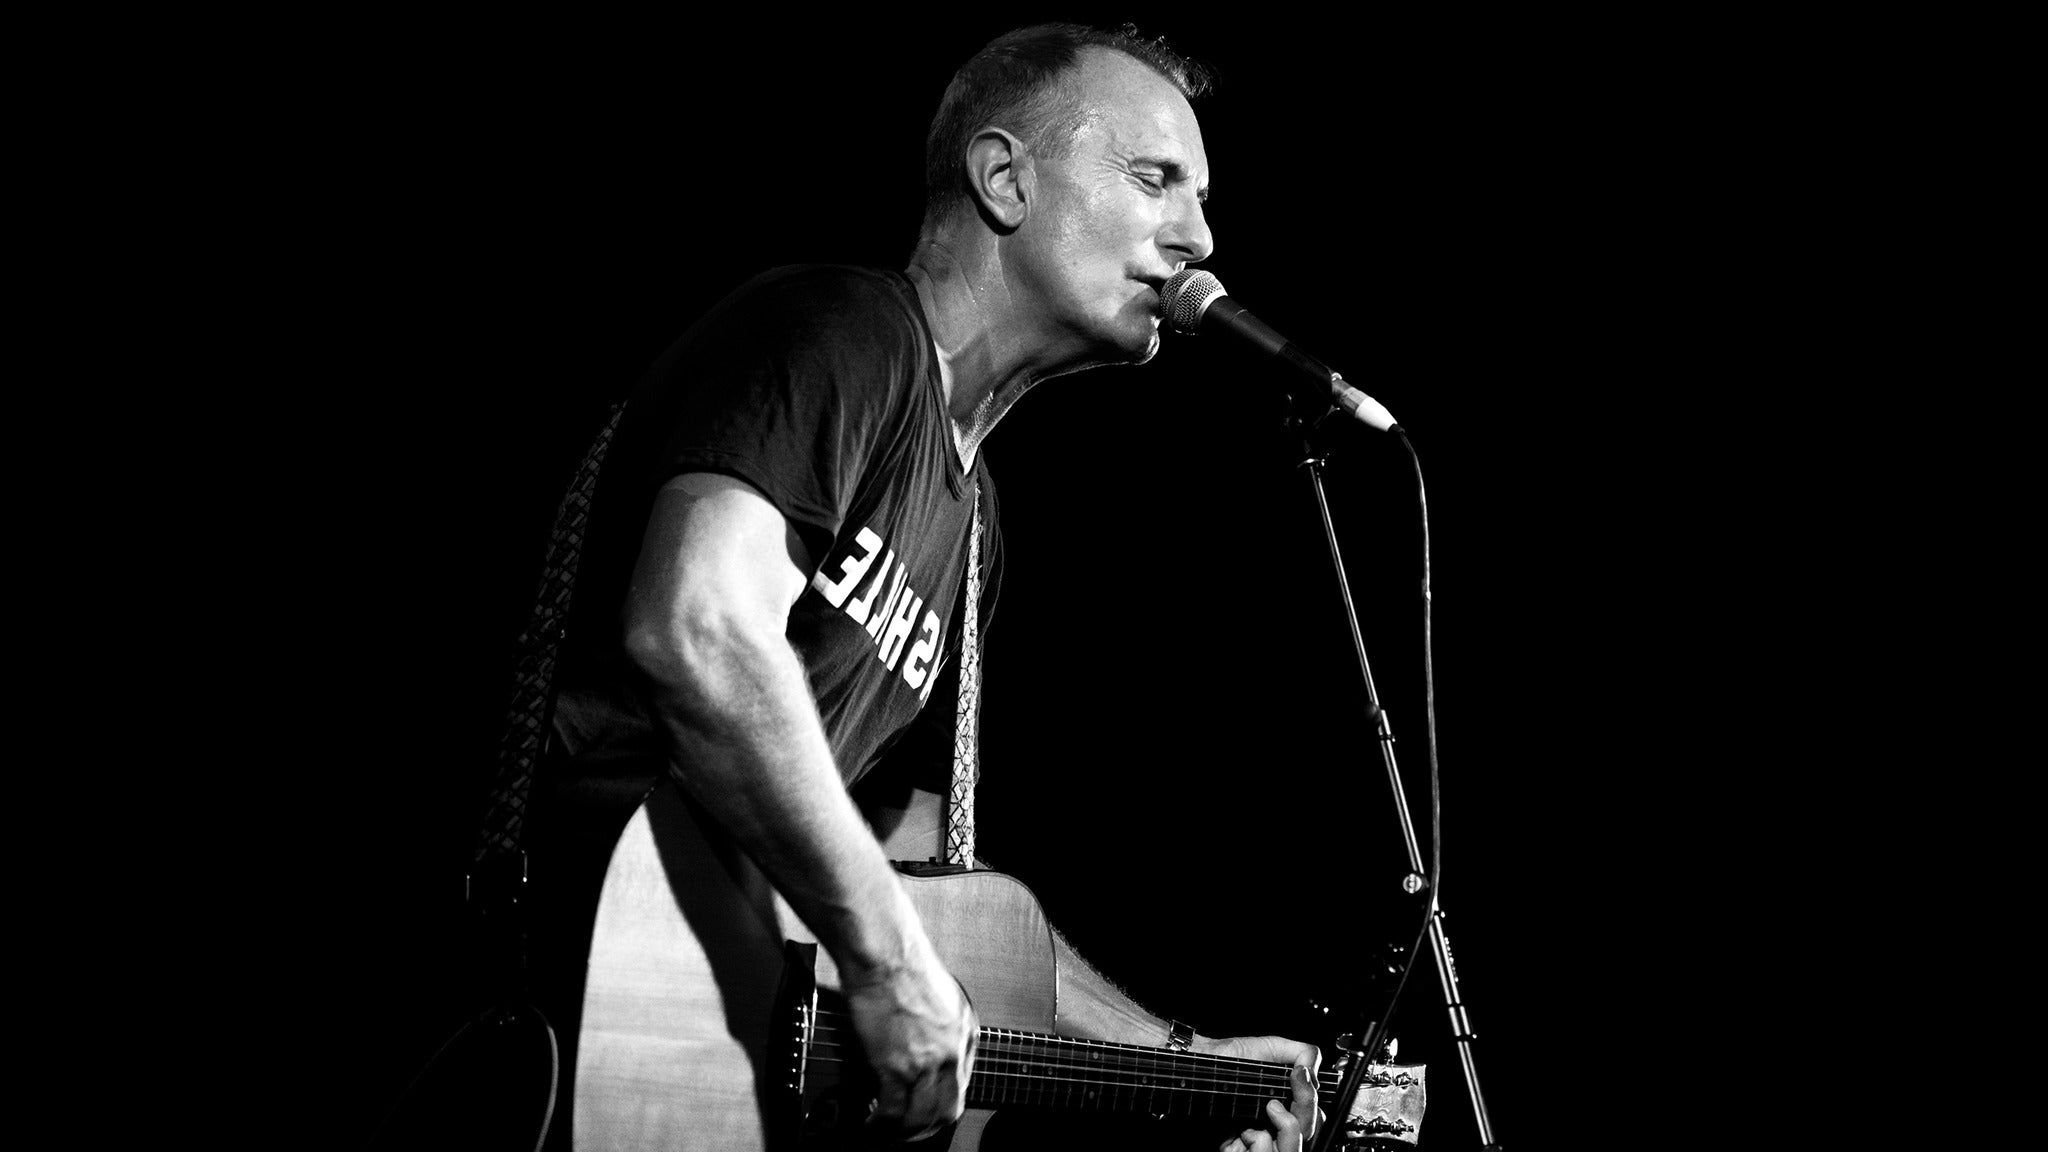 Image used with permission from Ticketmaster | James Reyne - The Boys Light Up tickets